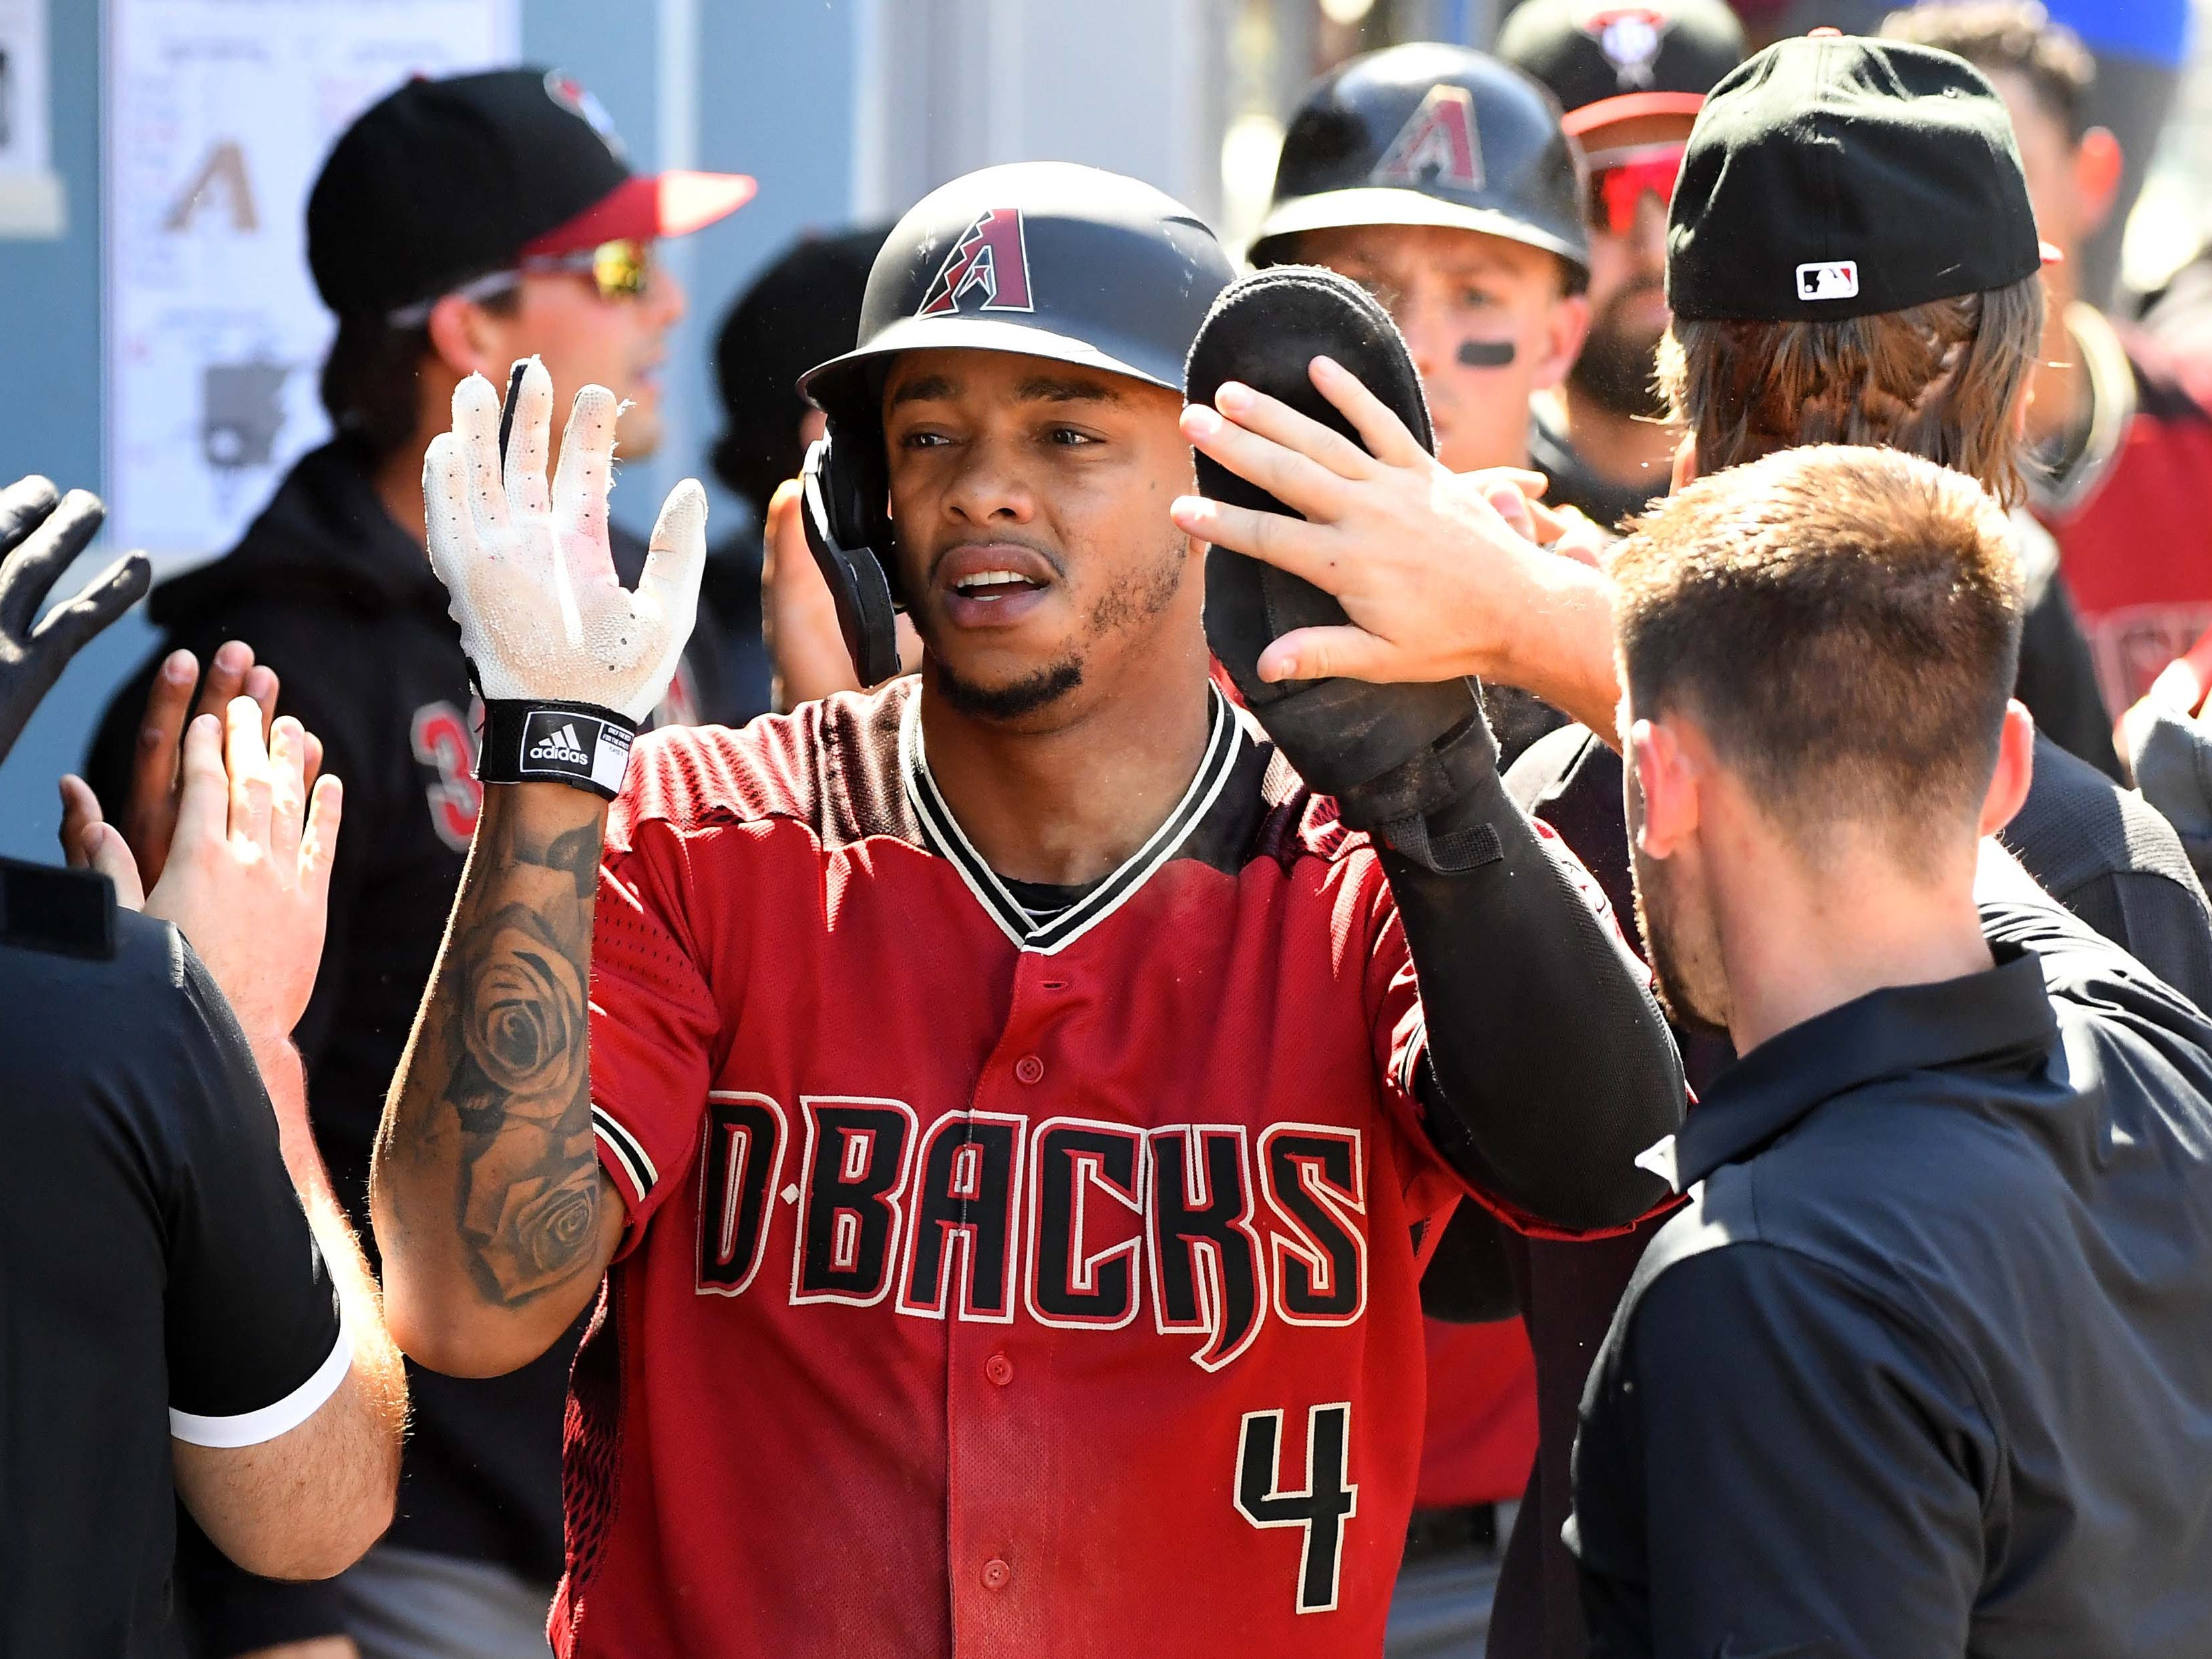 Mar 31, 2019; Los Angeles, CA, USA; Arizona Diamondbacks shortstop Ketel Marte (4) is greeted in the dugout after scoring a run in the fourth inning of the game at Dodger Stadium.